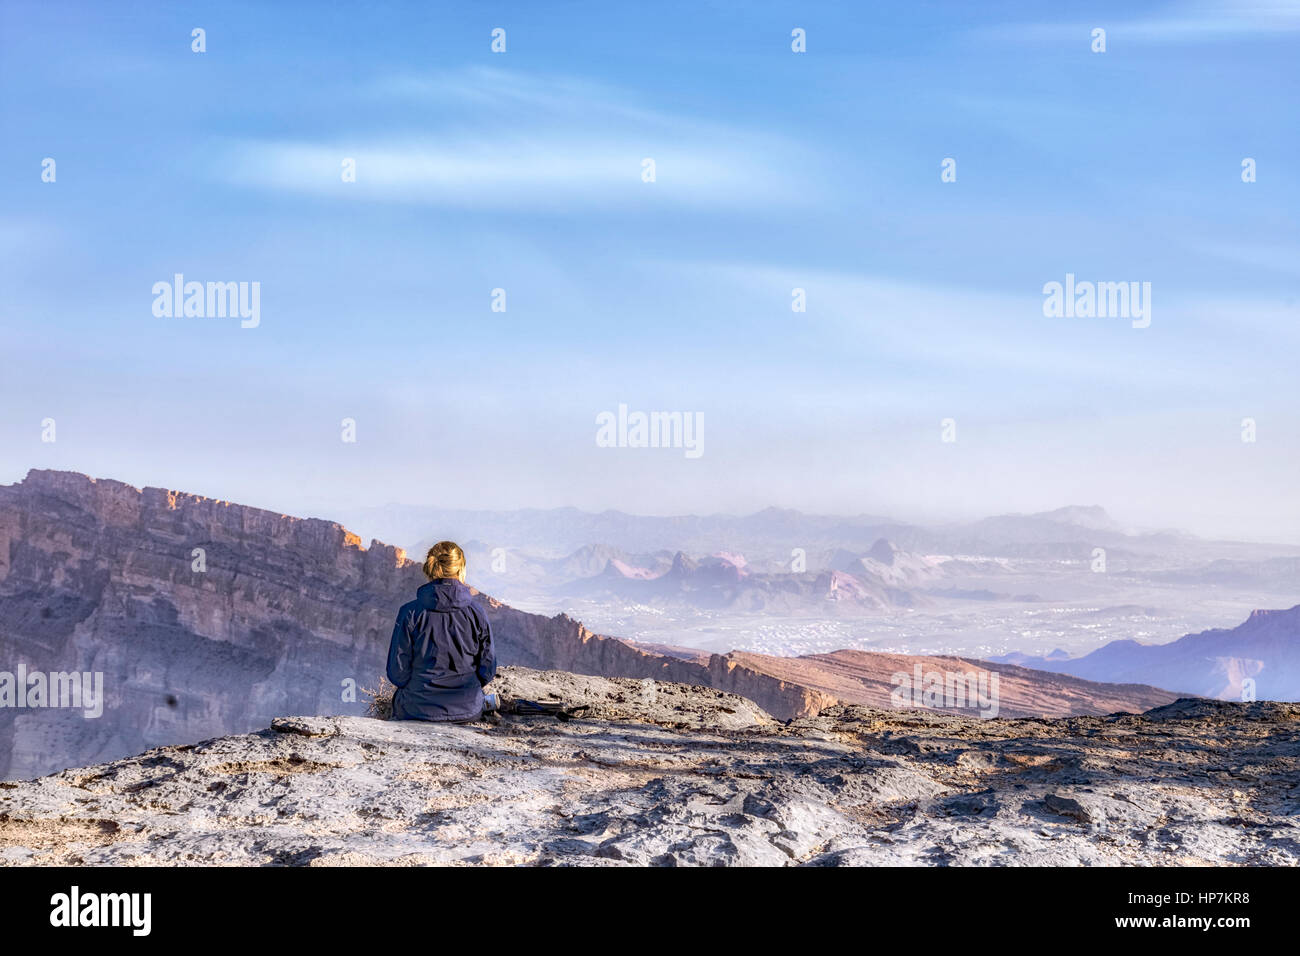 Jebel Shams, Oman, Middle East, Asia - Stock Image